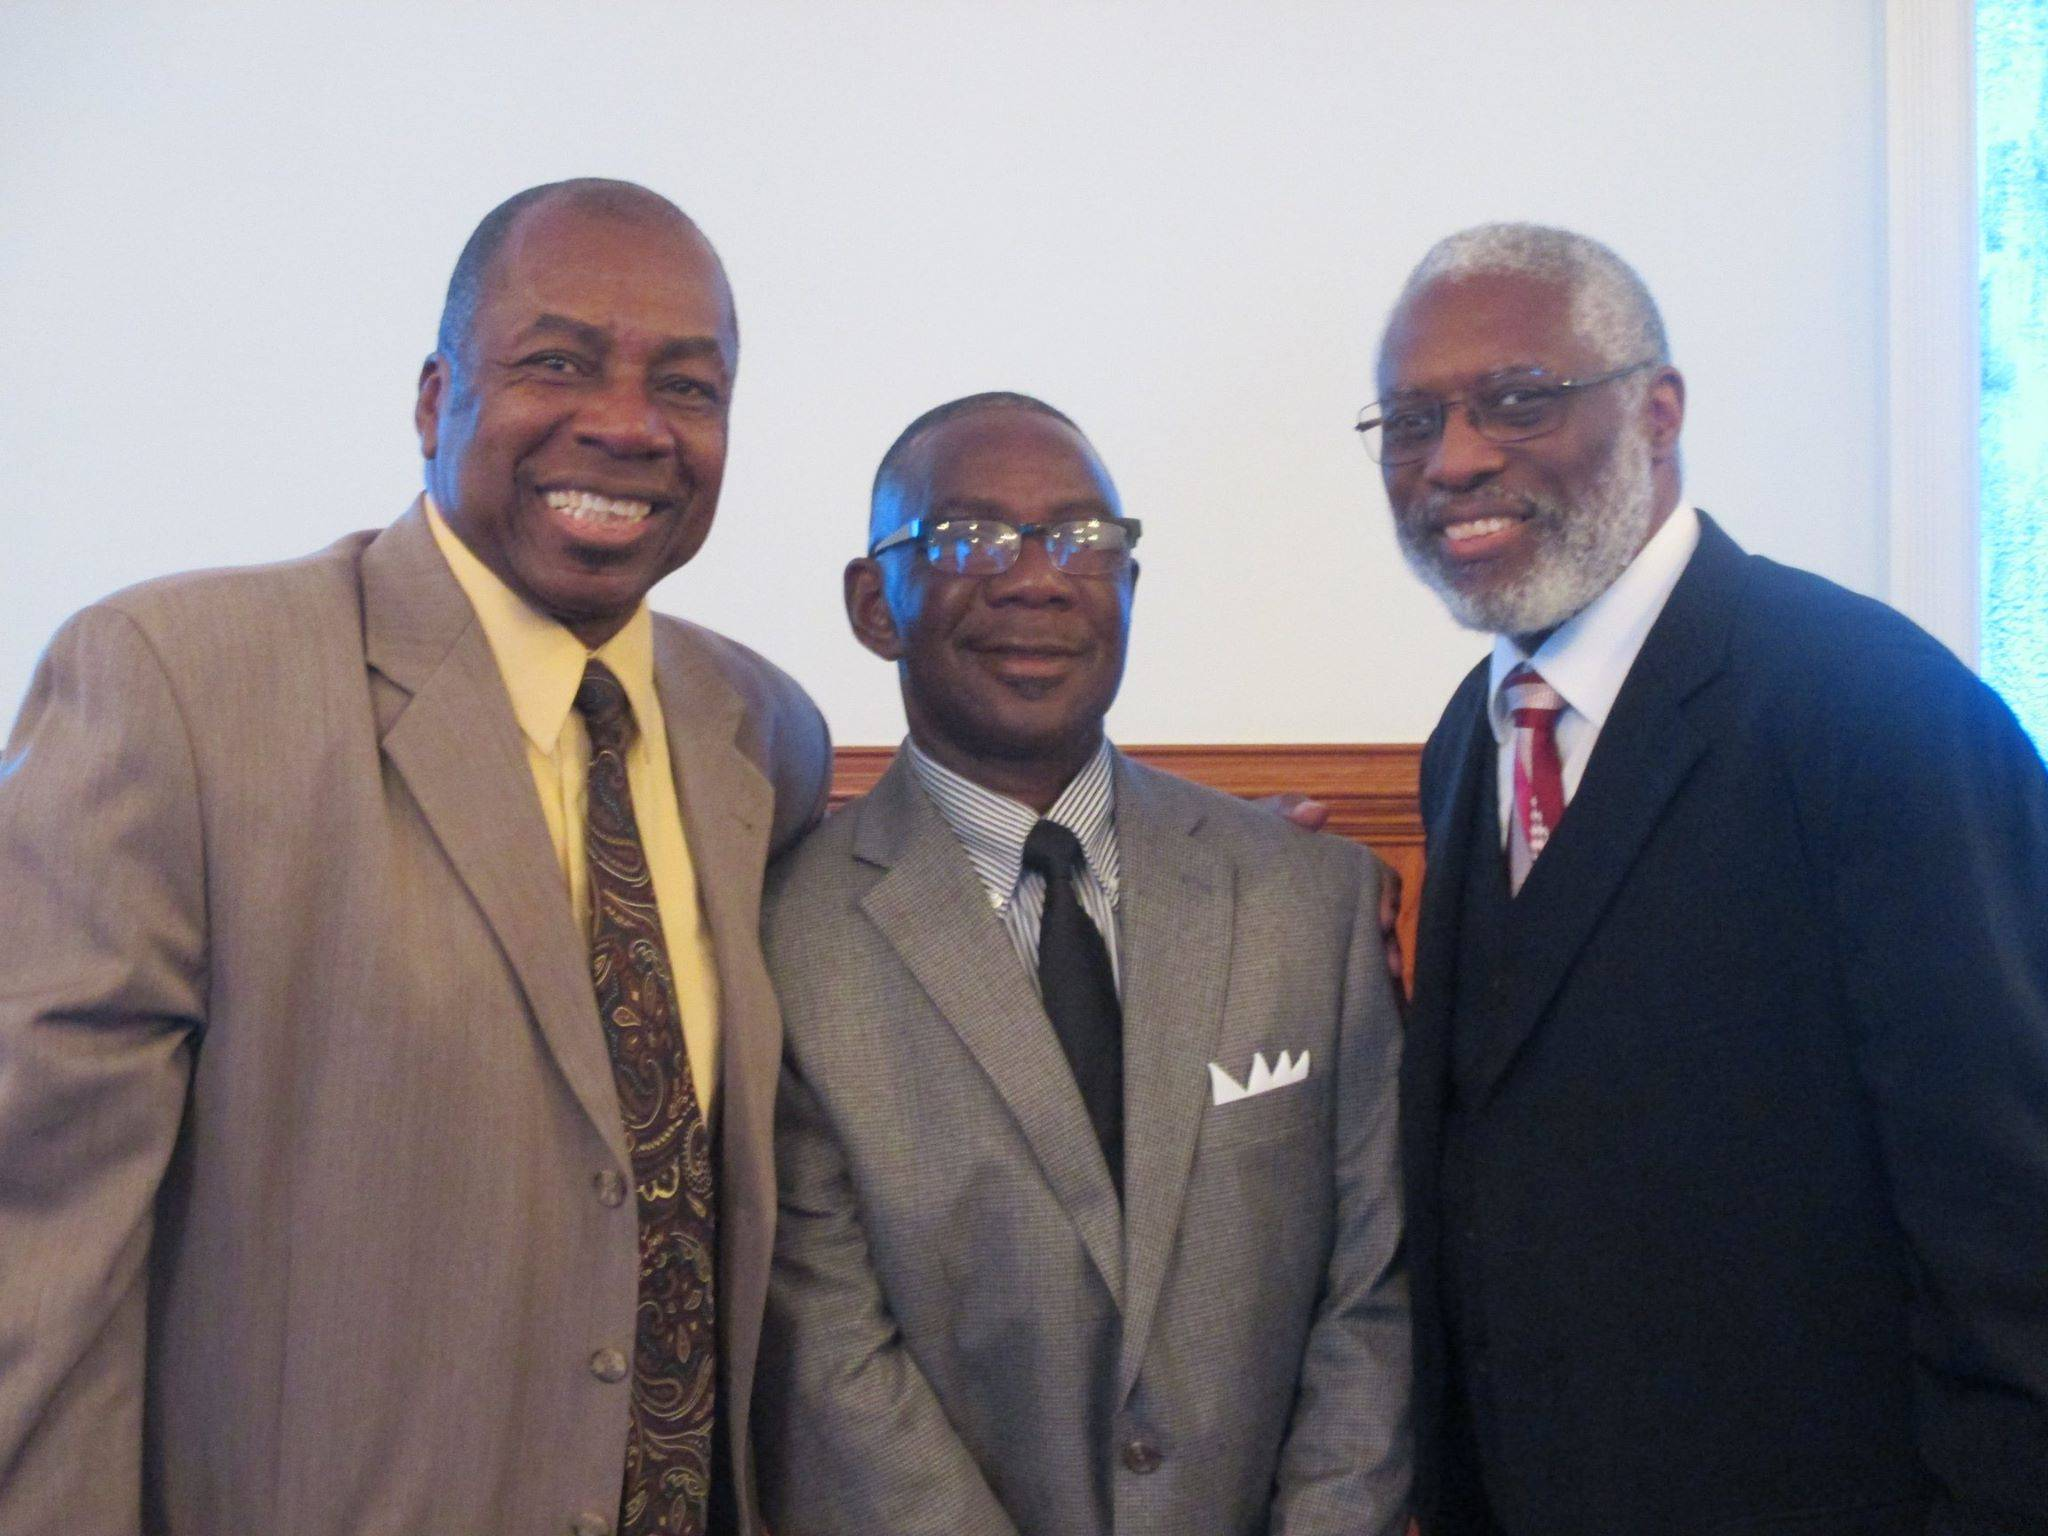 Pastor Joseph and J.Bishop Knox and Deacon Mazyck